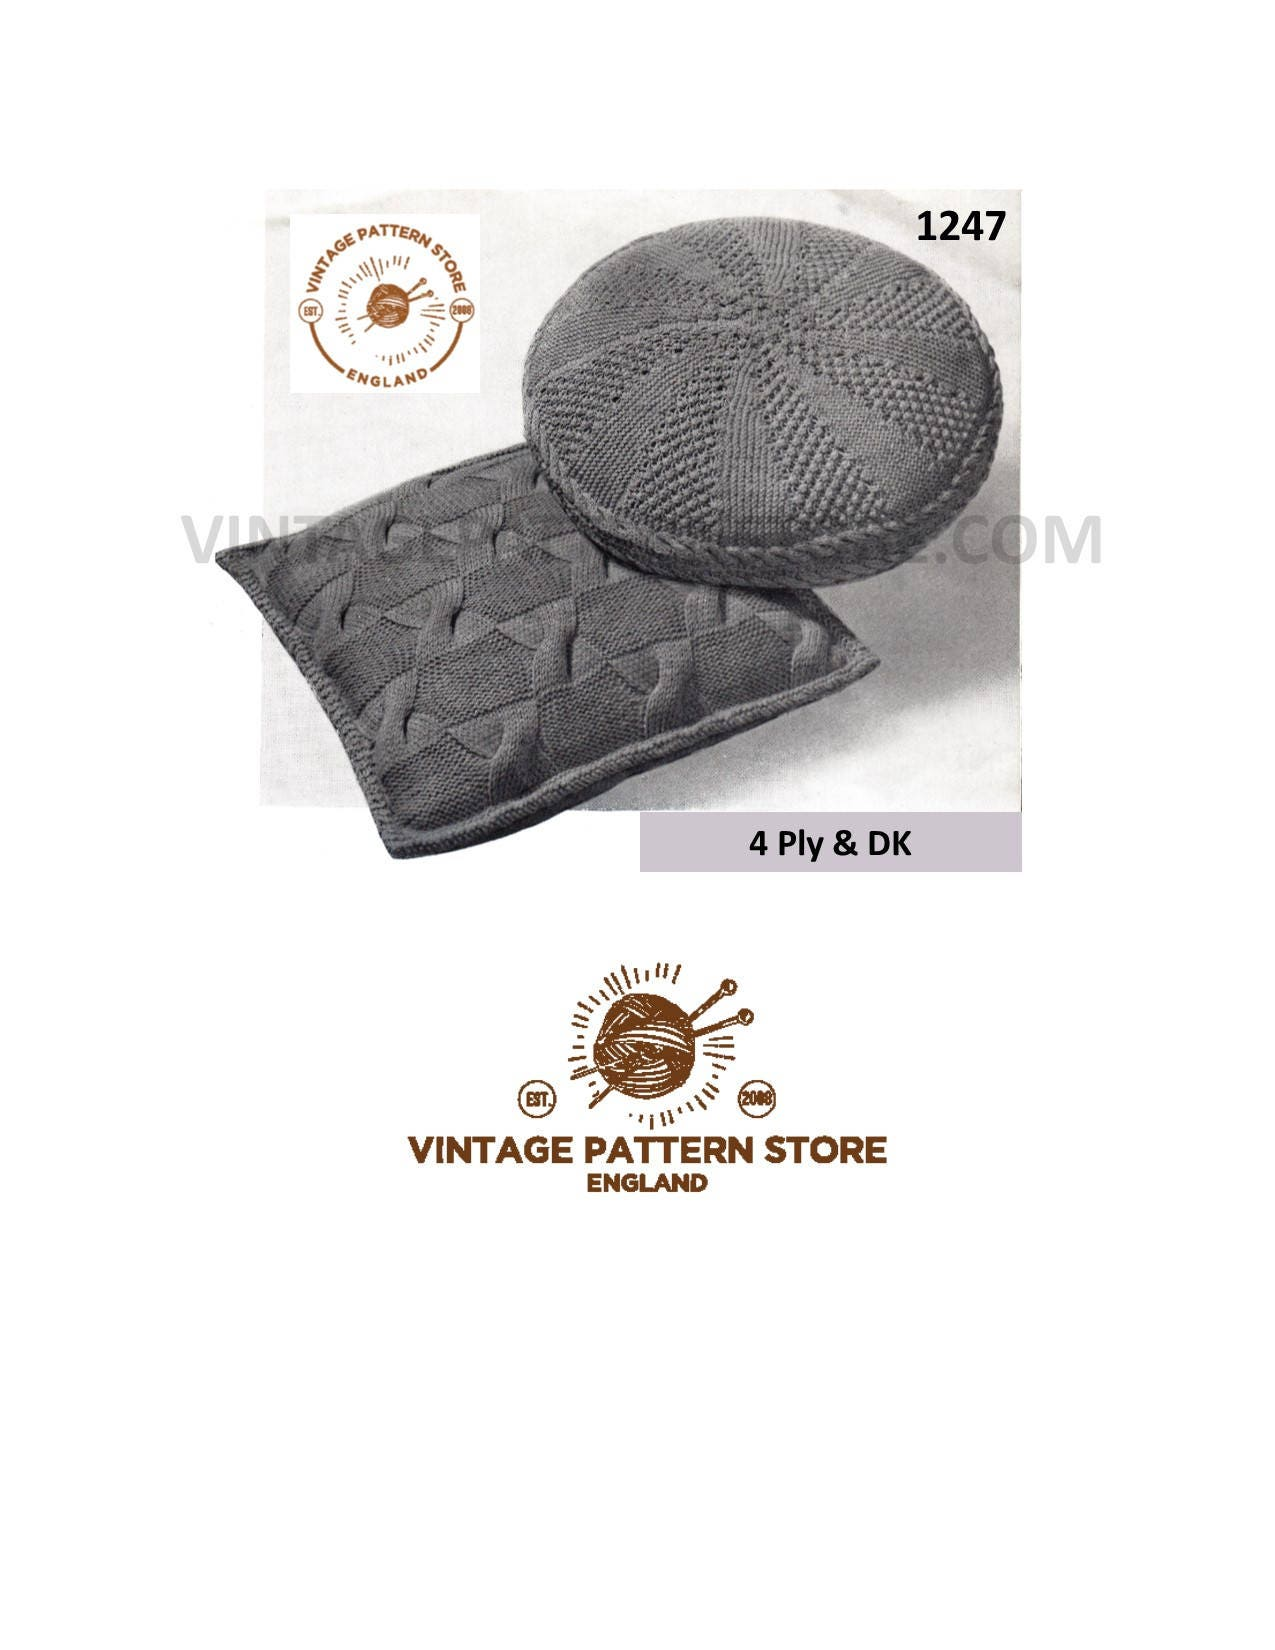 Cushion Cover Knitting Patterns 70s Cushion Patterns Square Round